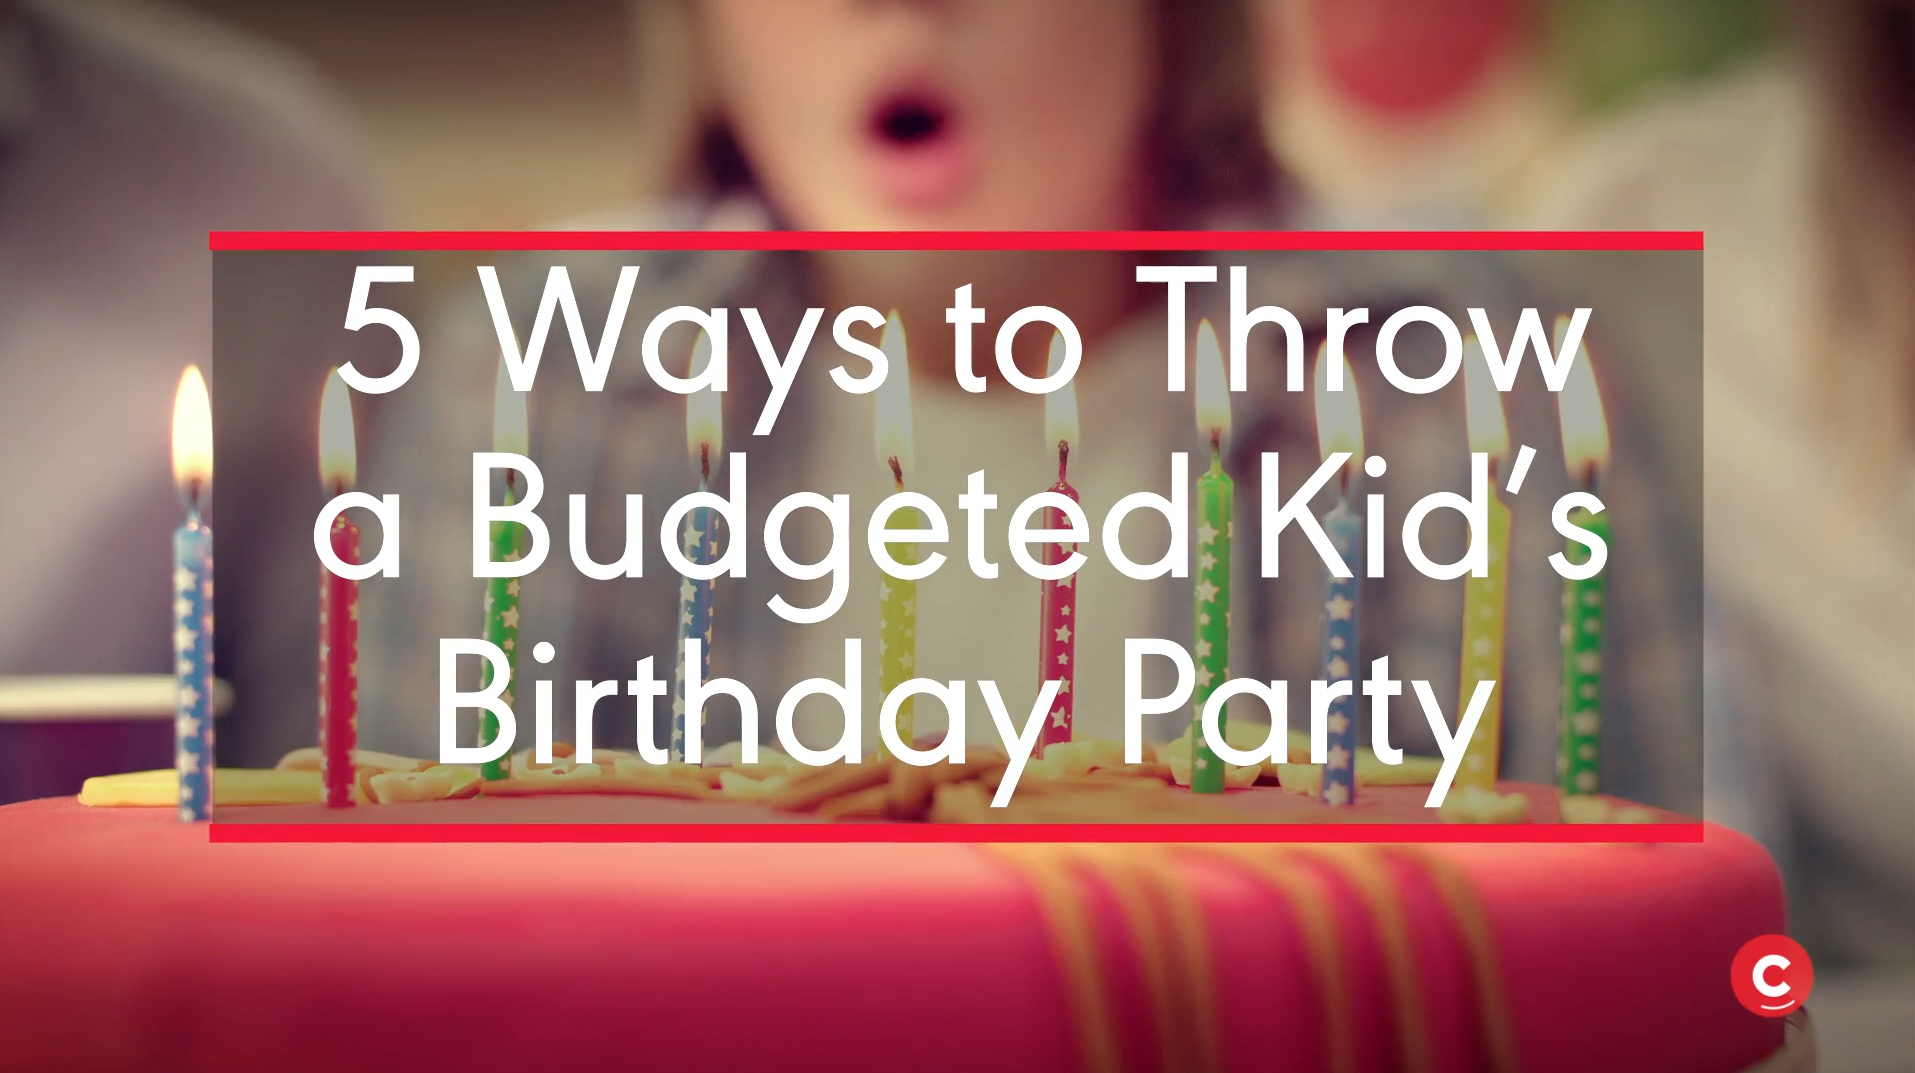 8 Tips for Throwing a Kids' Birthday Party on a Budget